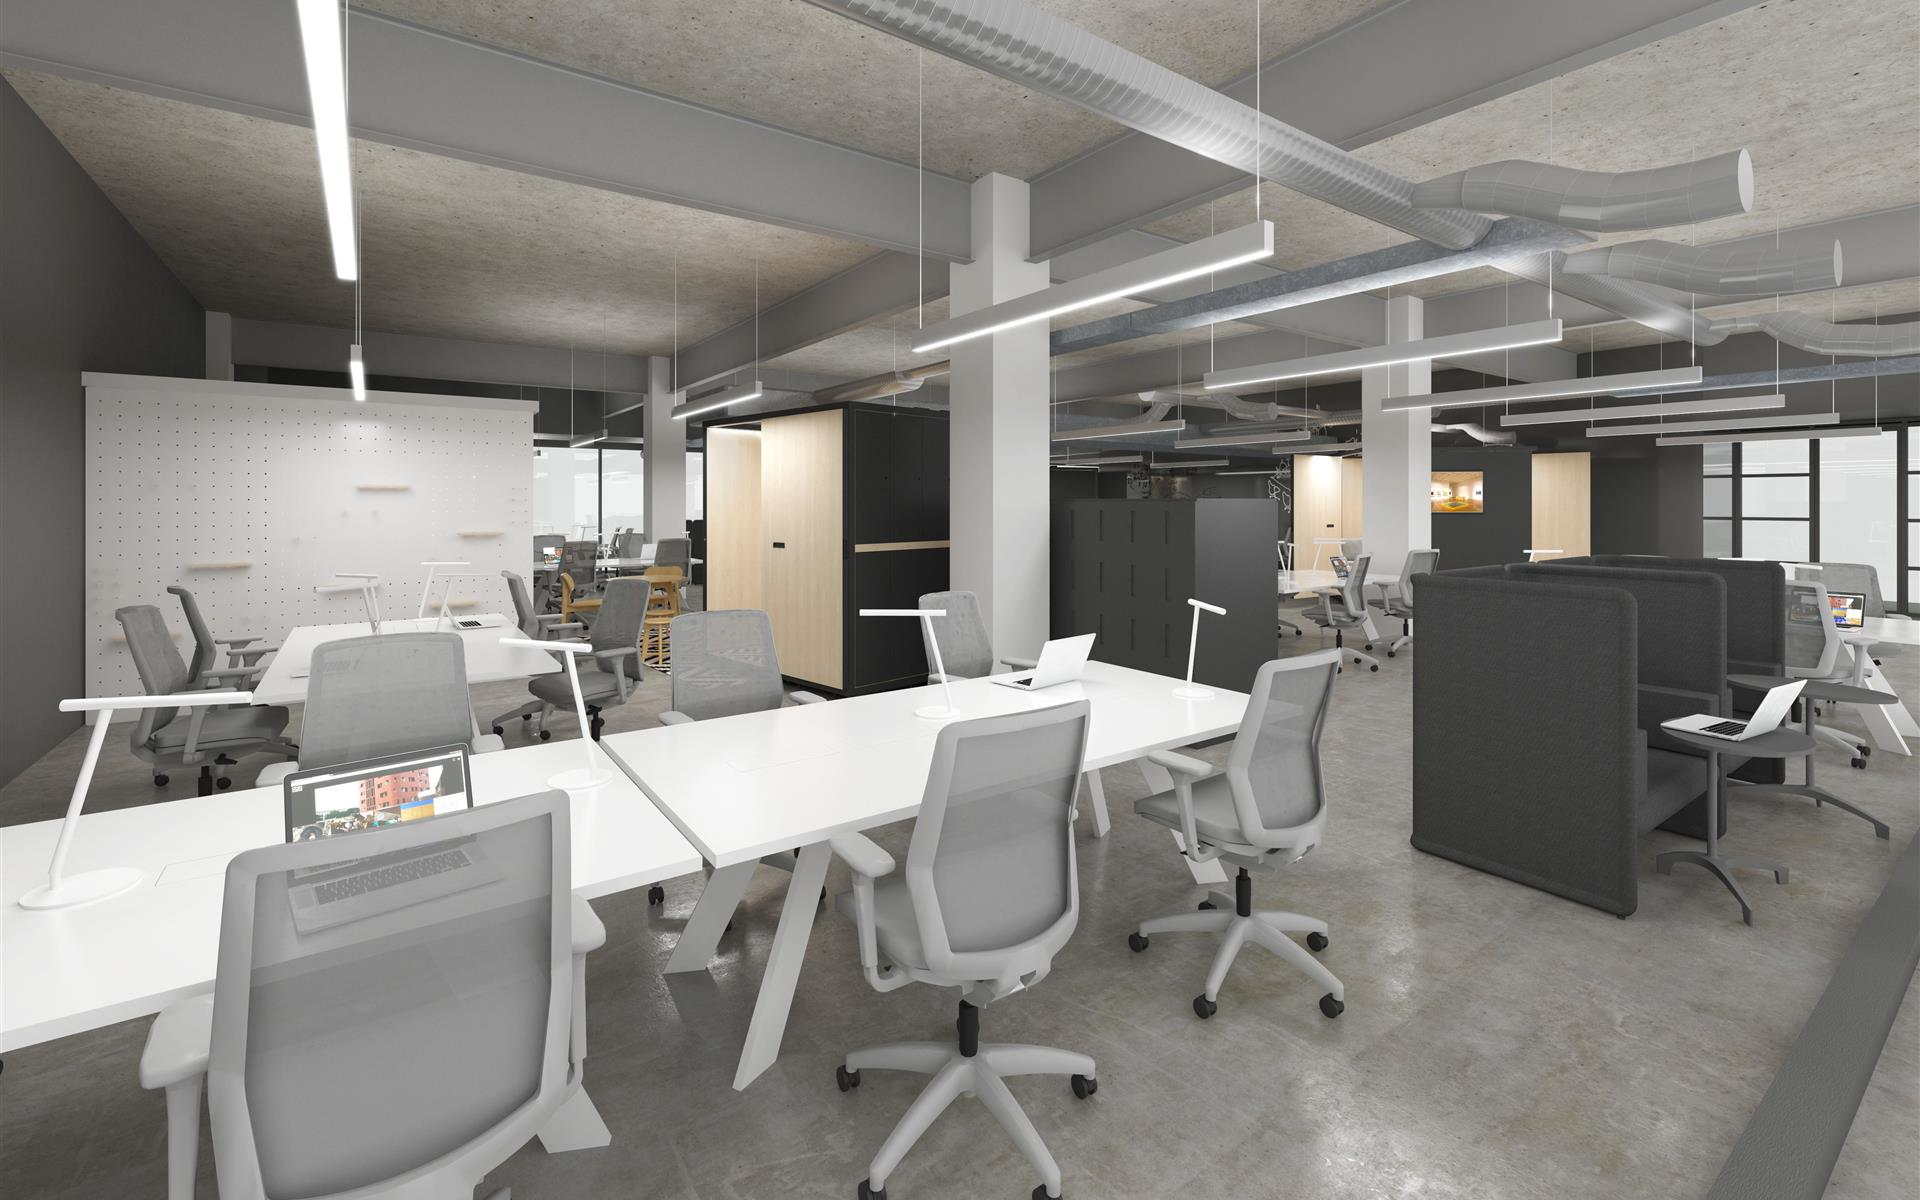 altSpace | Dallas - altSpace for 20